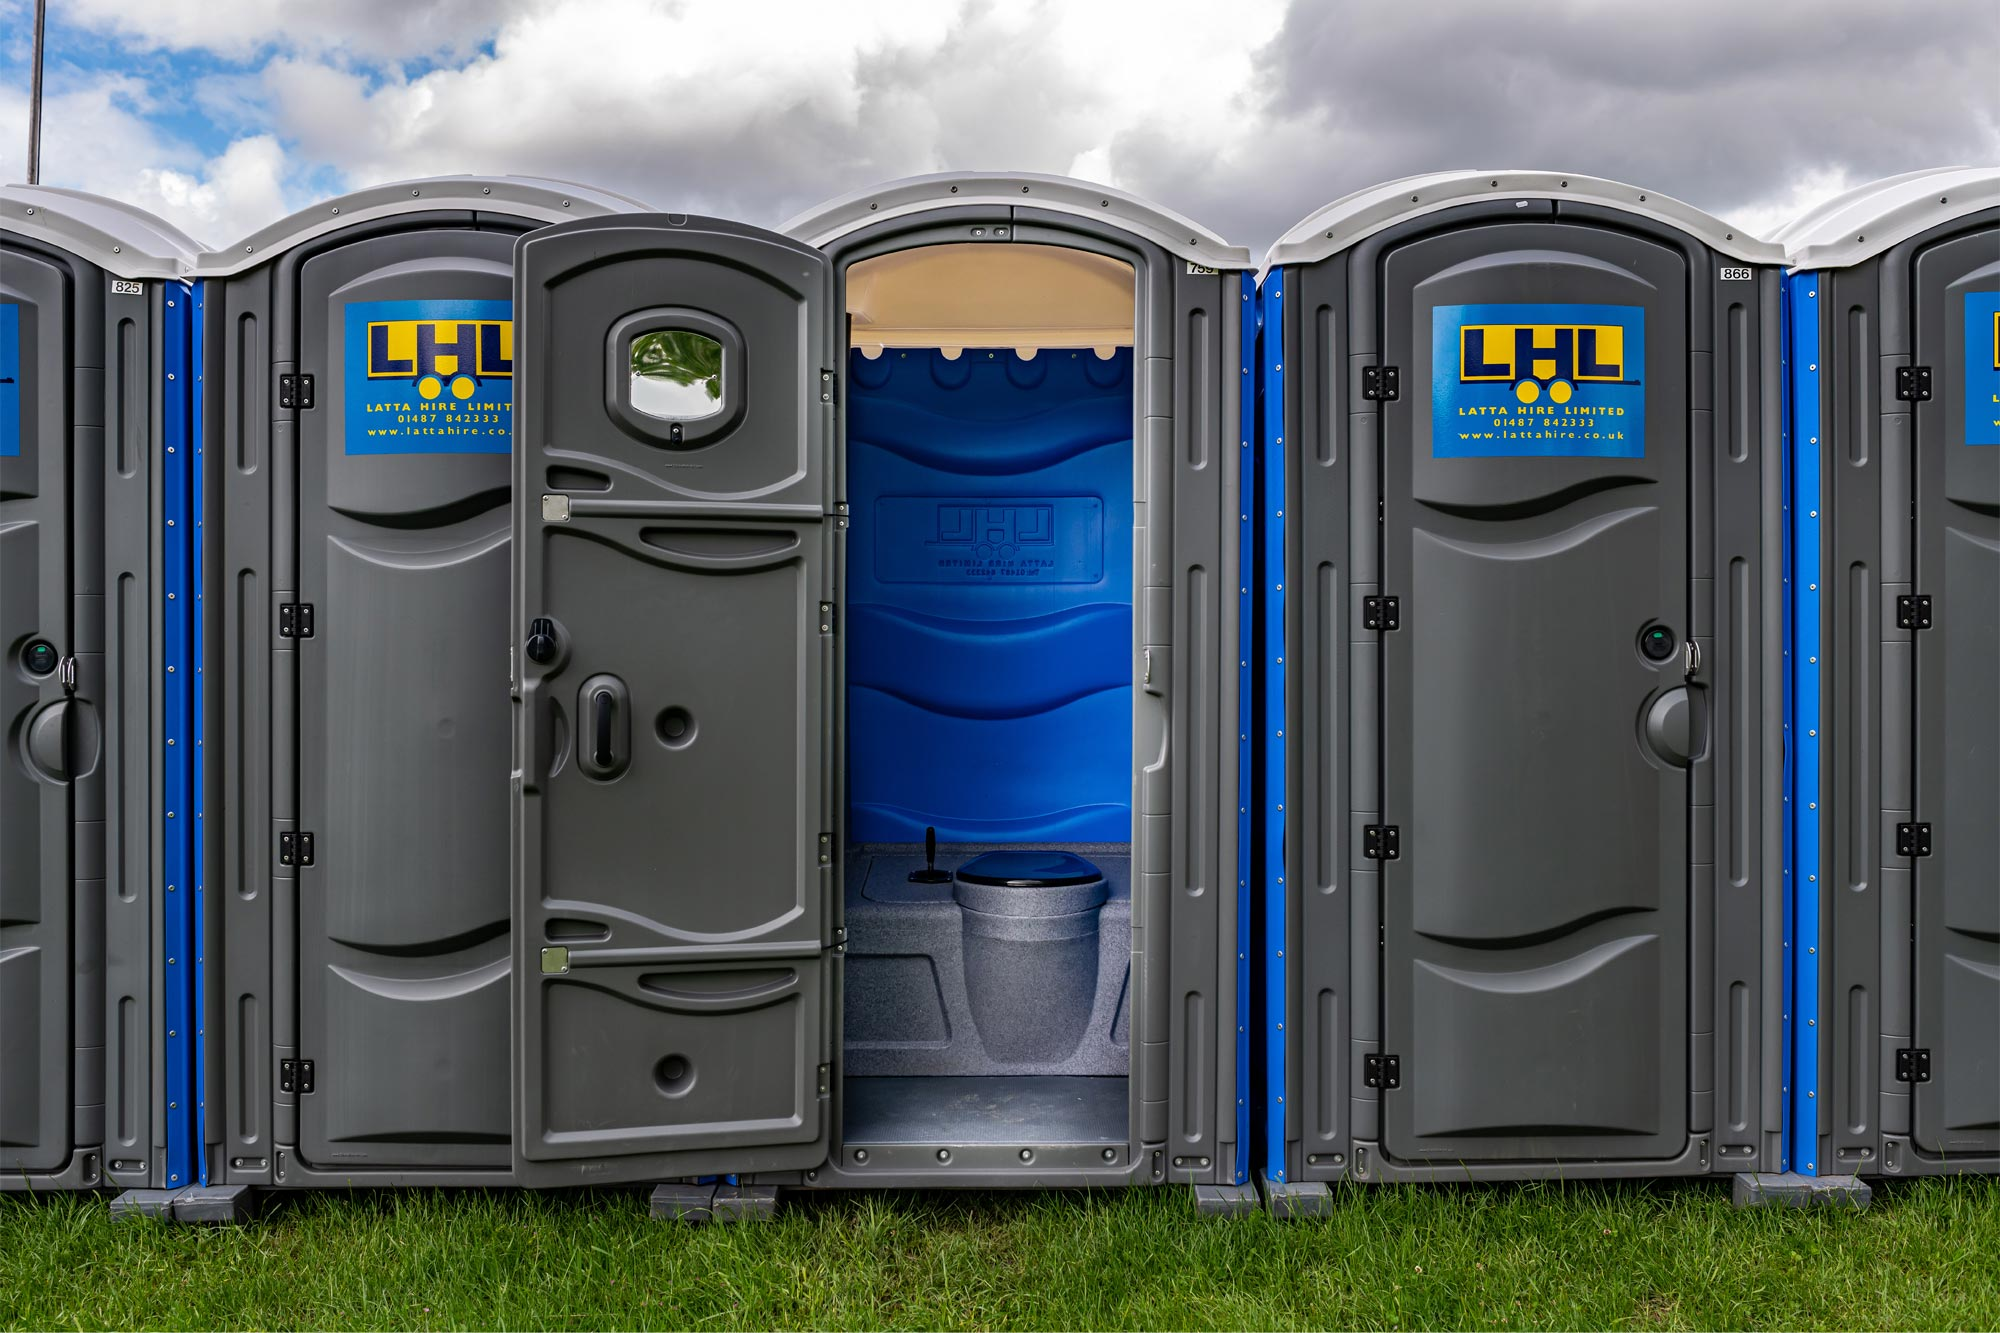 Portable Event Toilets Mobile